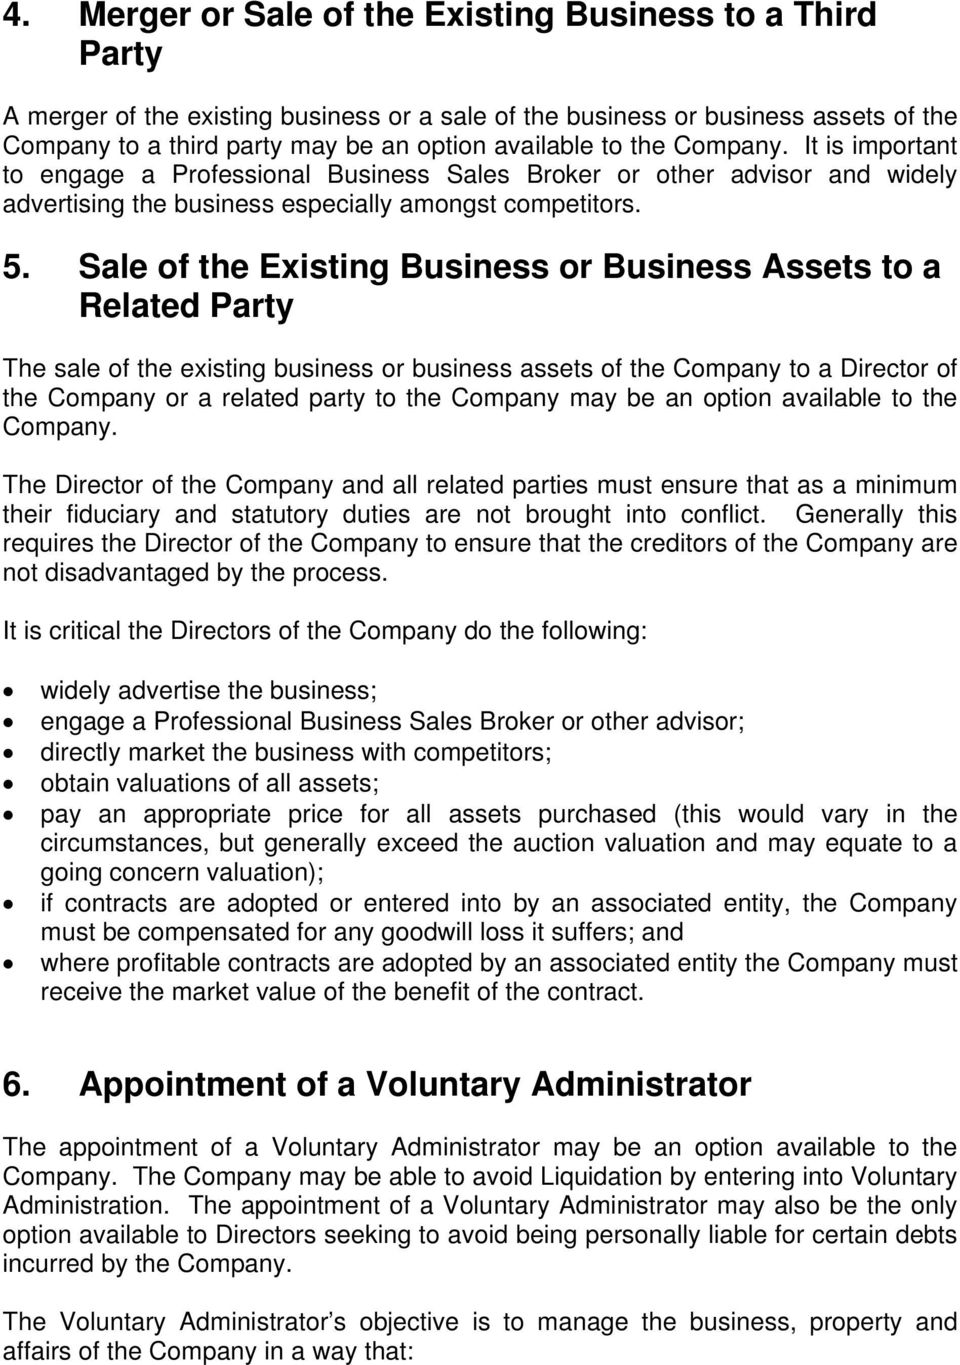 Sale of the Existing Business or Business Assets to a Related Party The sale of the existing business or business assets of the Company to a Director of the Company or a related party to the Company